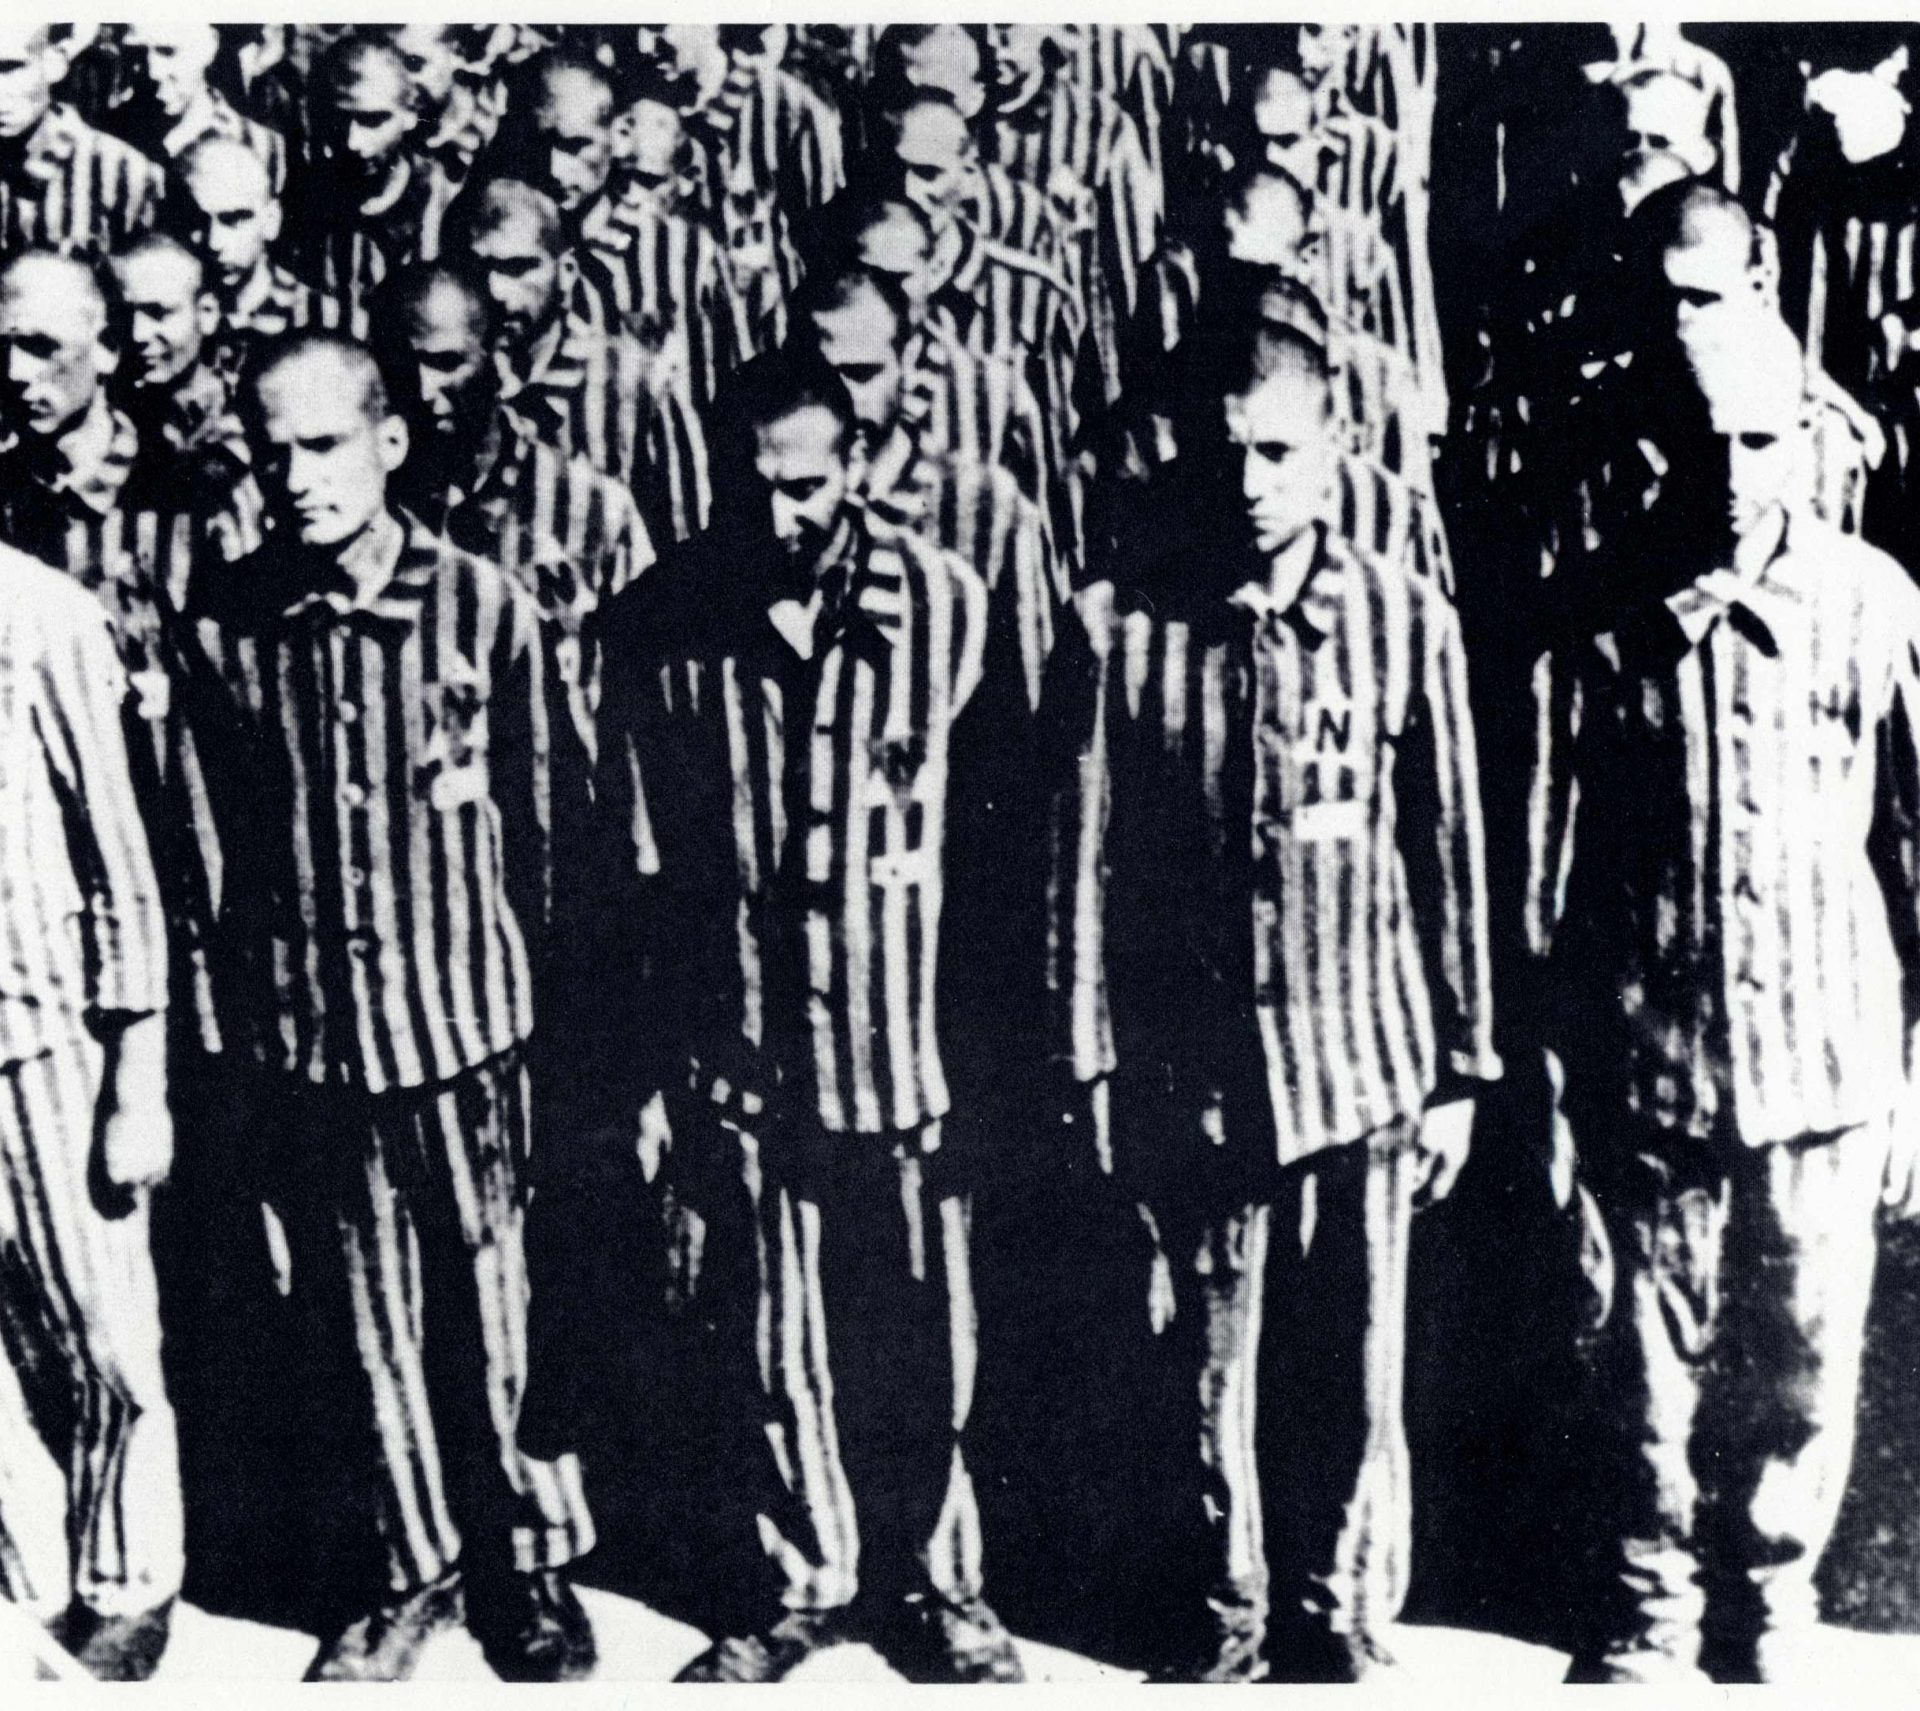 Dutch prisoners at the Buchenwald concentration camp, February 28, 1941. This photo illustrates both the dehumanization of the prisoners and a mountain of corpses: they all have their heads shaved, all wear the same uniform and they stay in a row for hours.